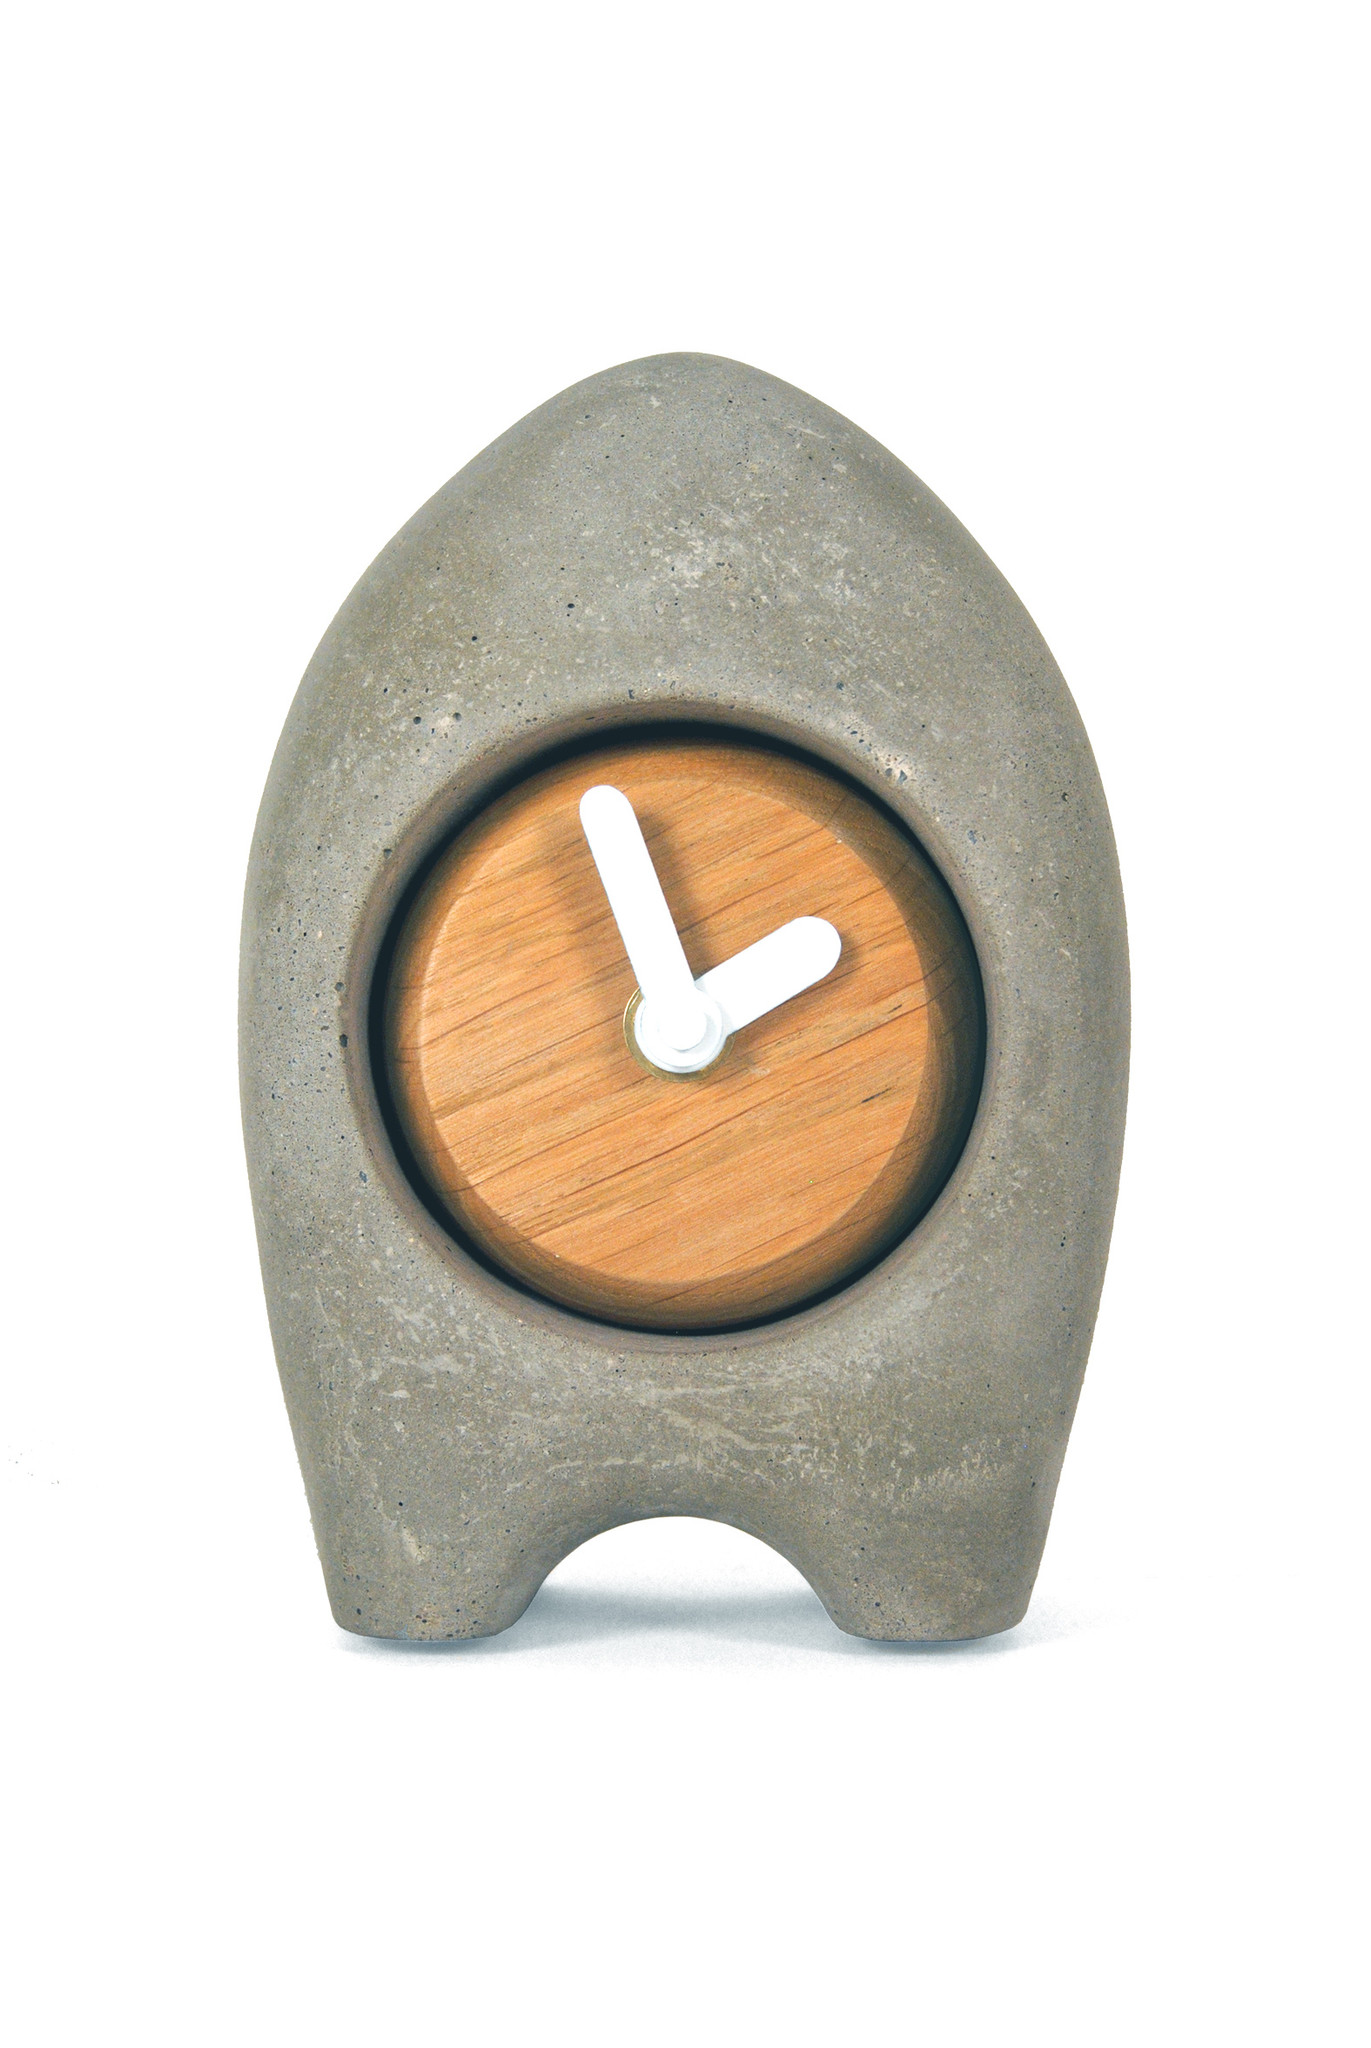 ramon hulspas Clock - the Nub beton/eiken